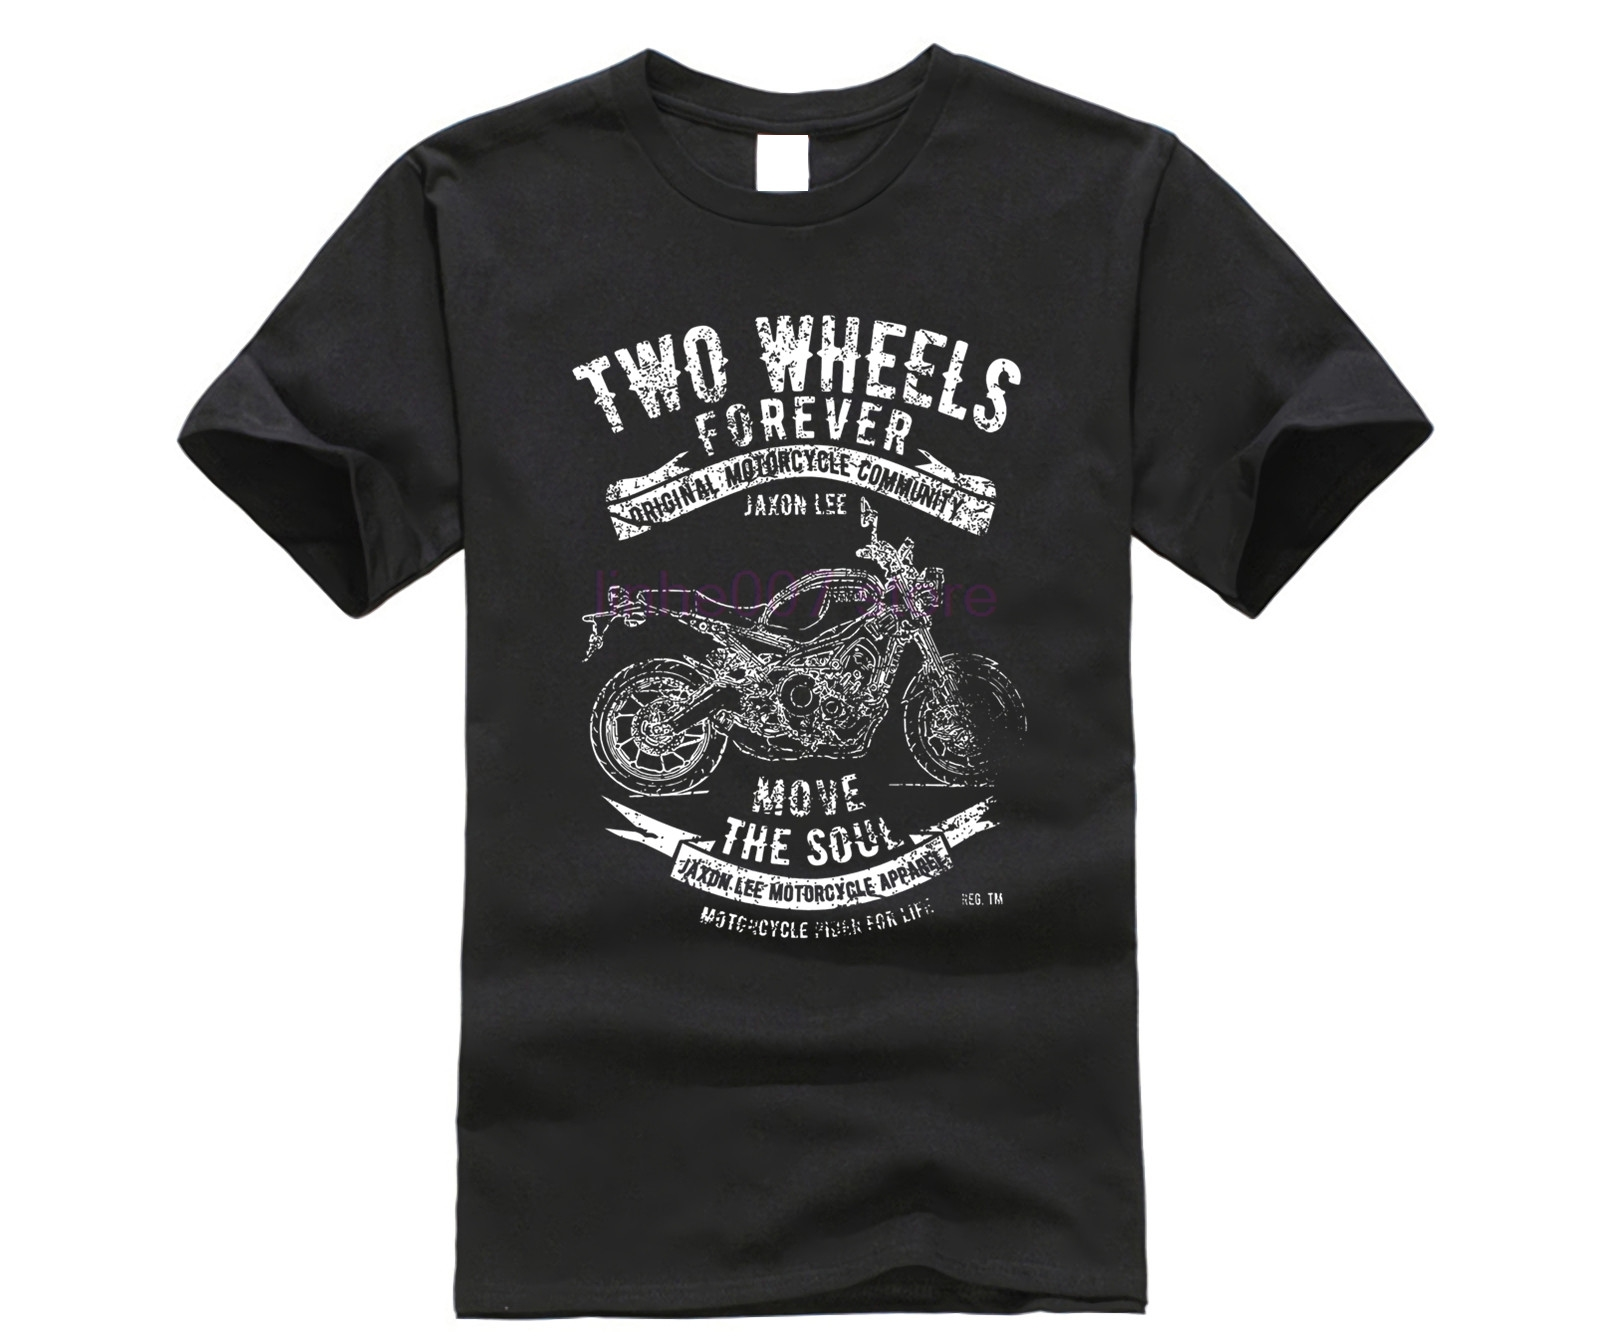 2019 New Short Sleeves Cotton Fashion   T     Shirt   Japanese XSR900 Motorcycle design Tee   shirt